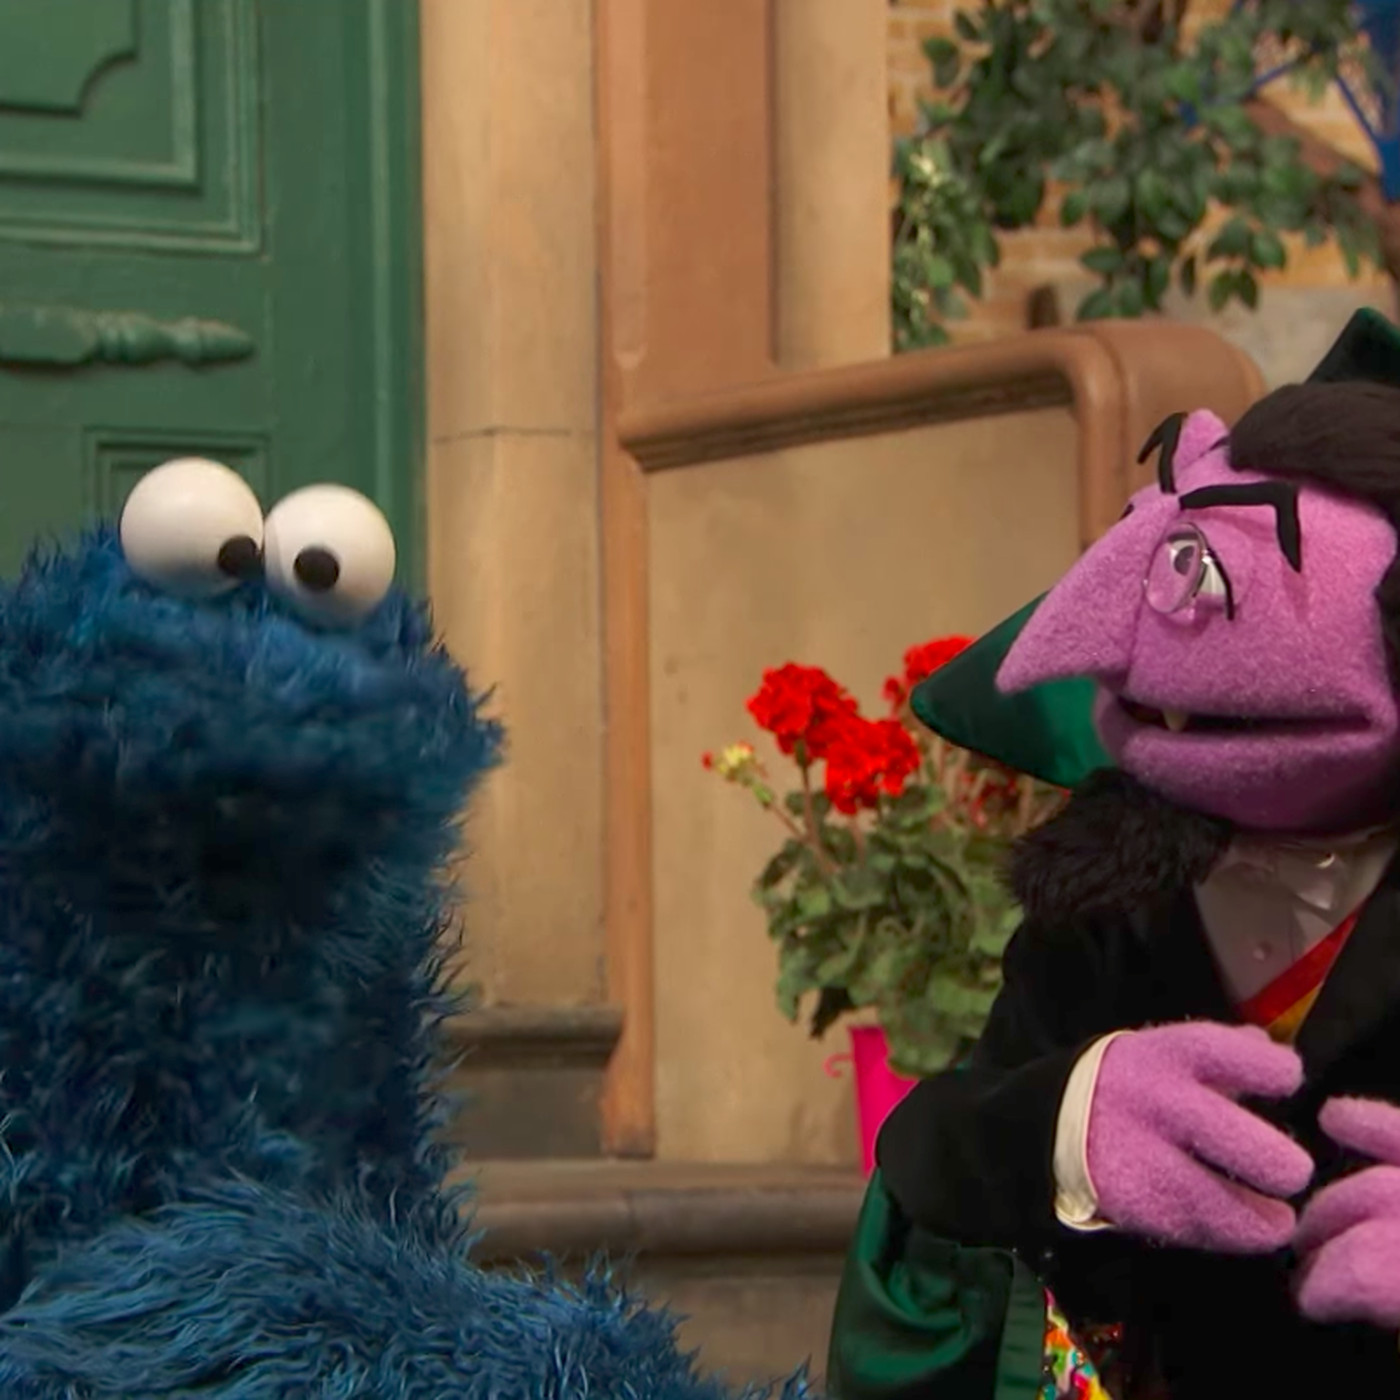 Sesame Street's Traumatic Experiences helps kids cope with